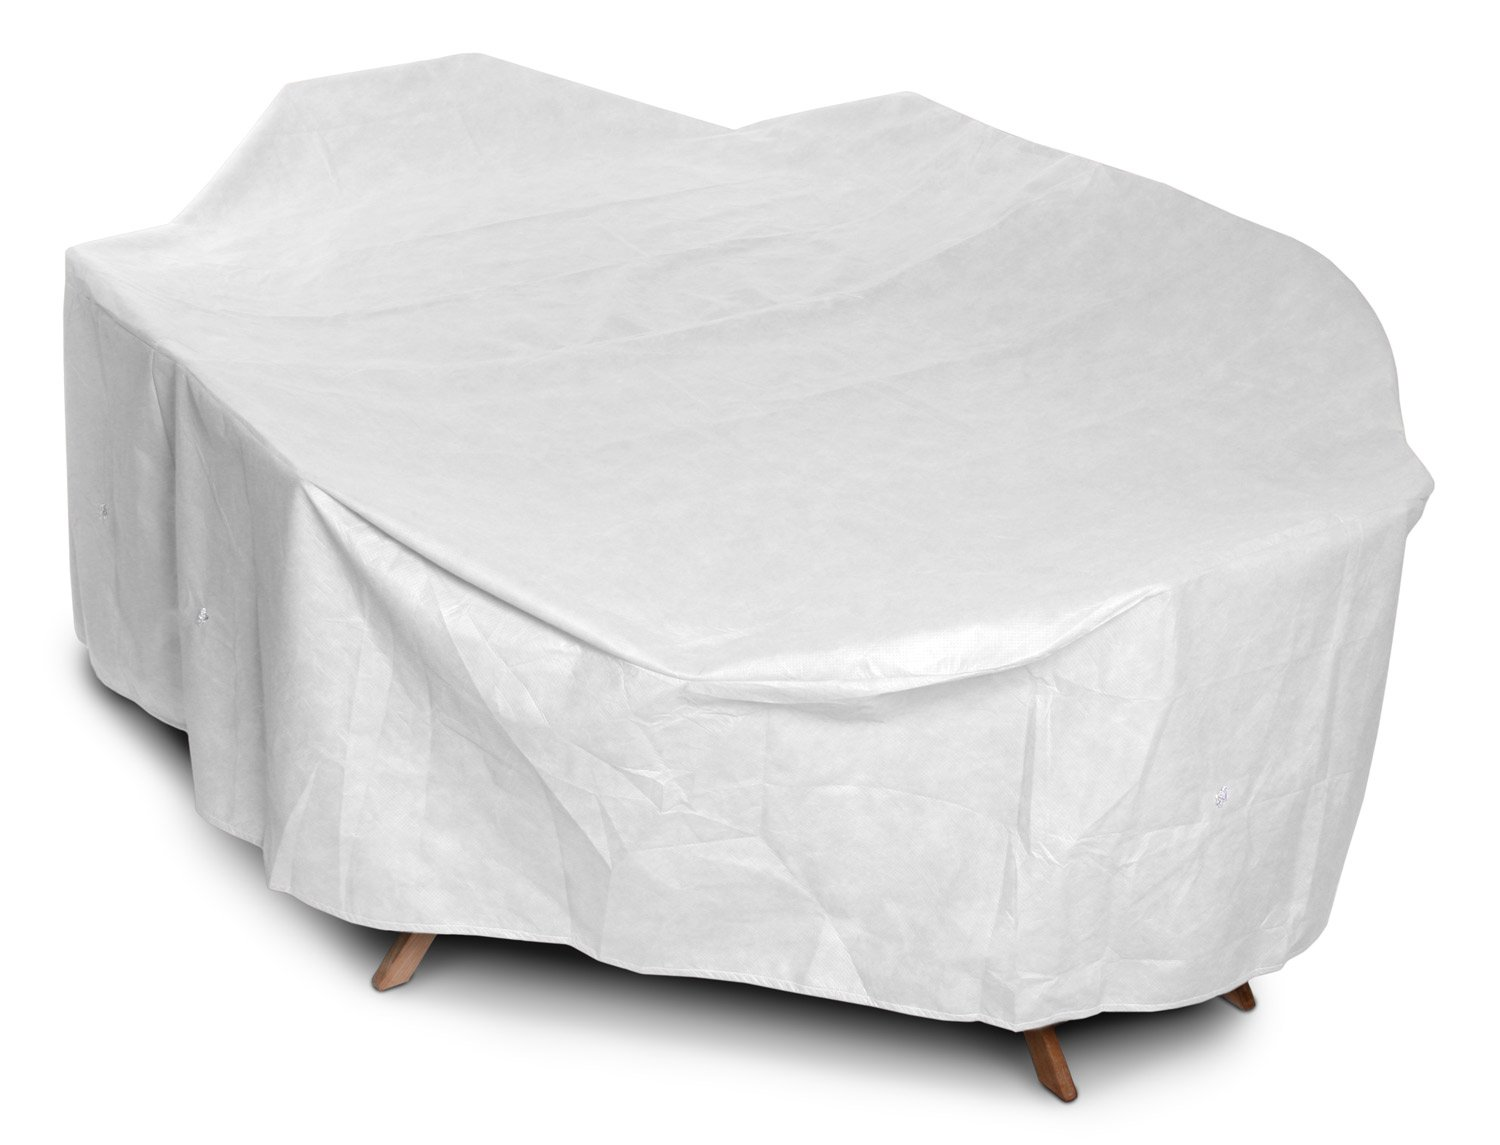 Amazon.com : KoverRoos DuPont Tyvek 21362 Large High Back Dining Set Cover,  112 By 88 By 36 Inch, White : Patio Table Covers : Garden U0026 Outdoor